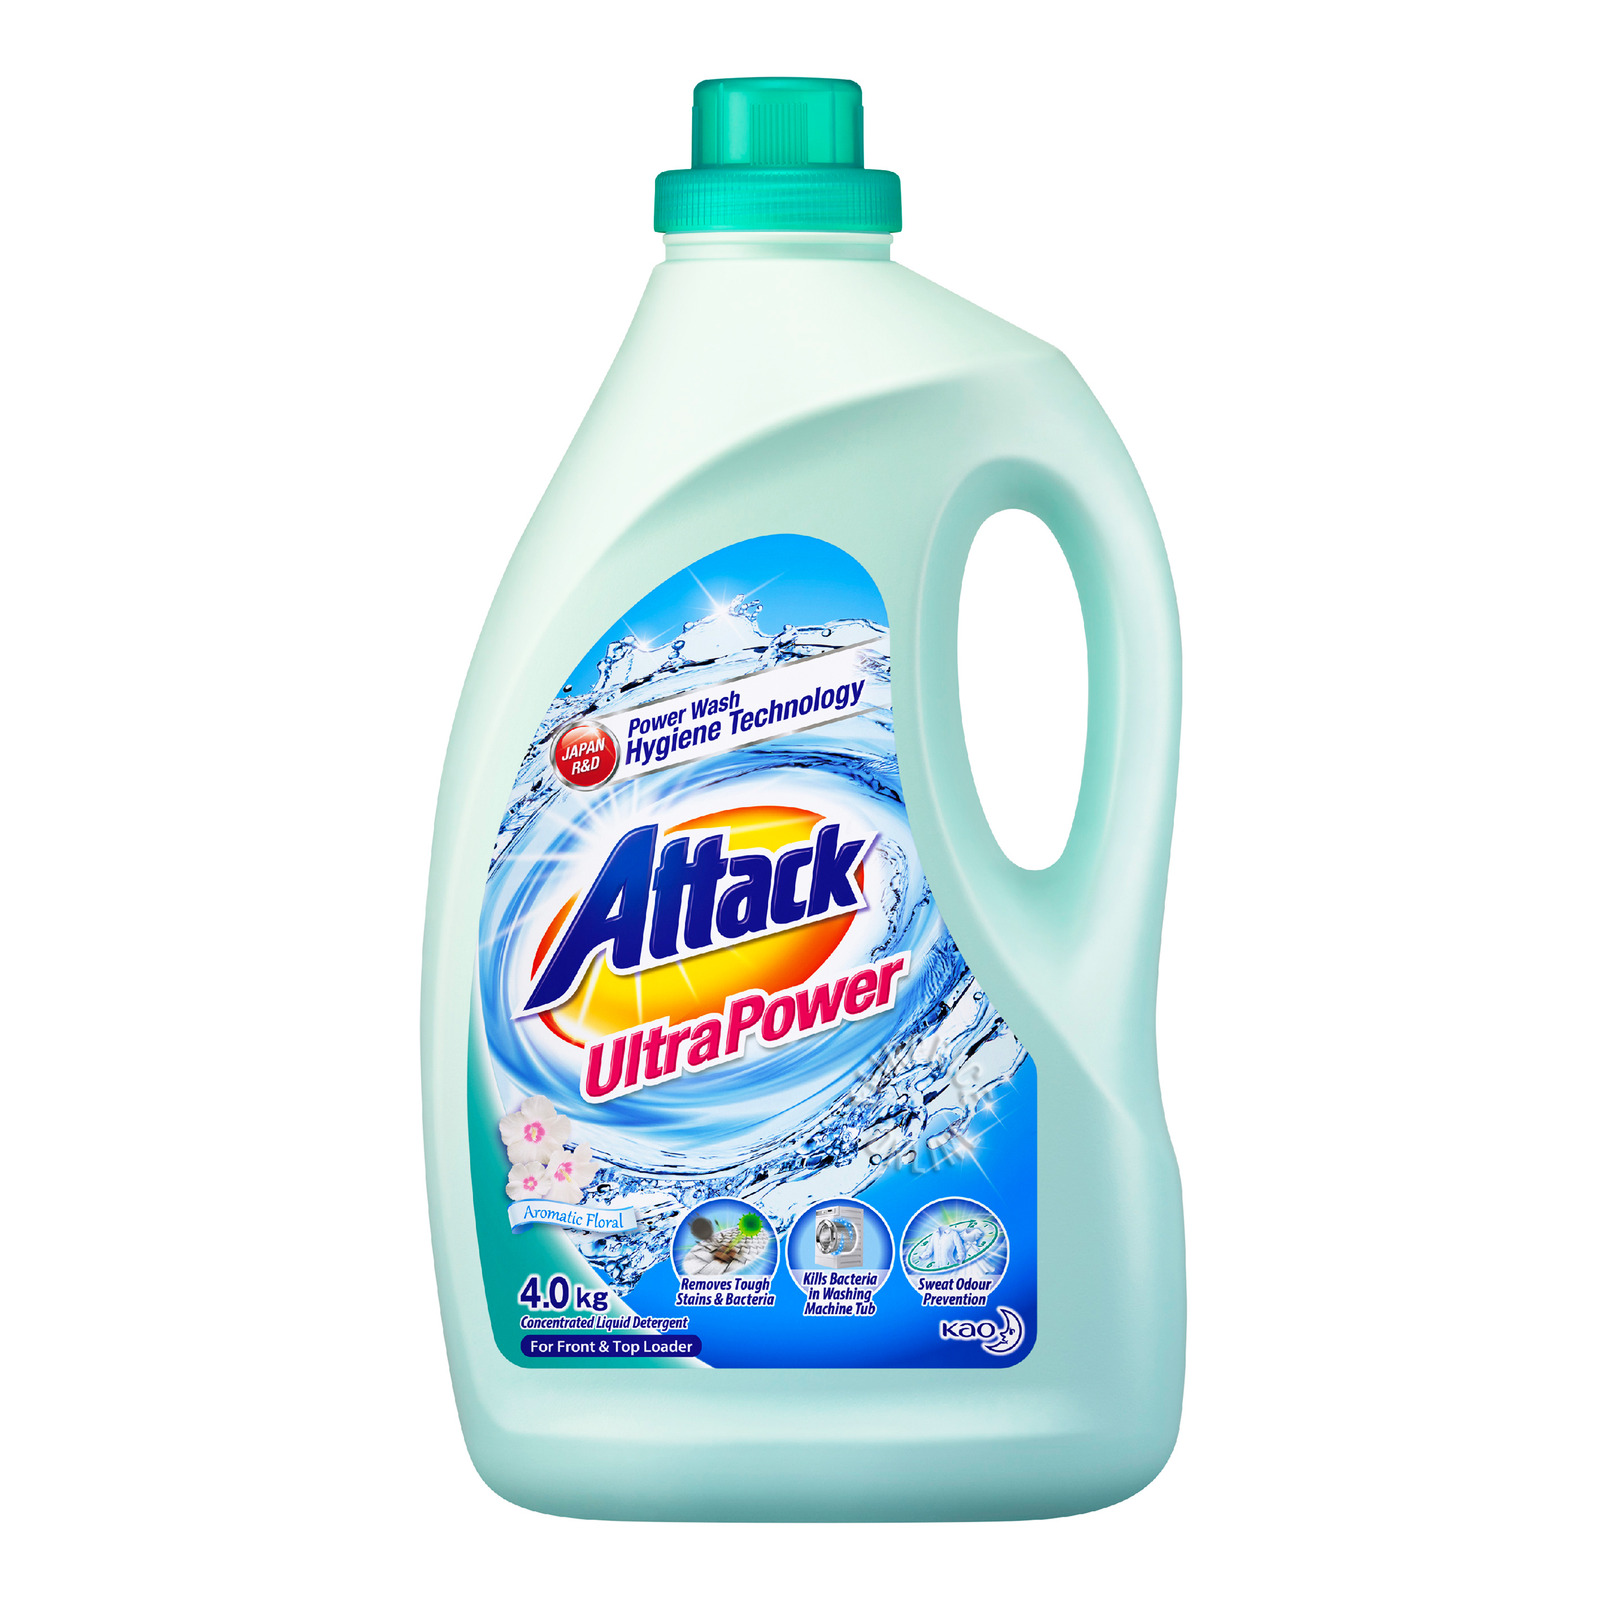 Attack Liquid Detergent - Ultra Power (Aromatic Floral)